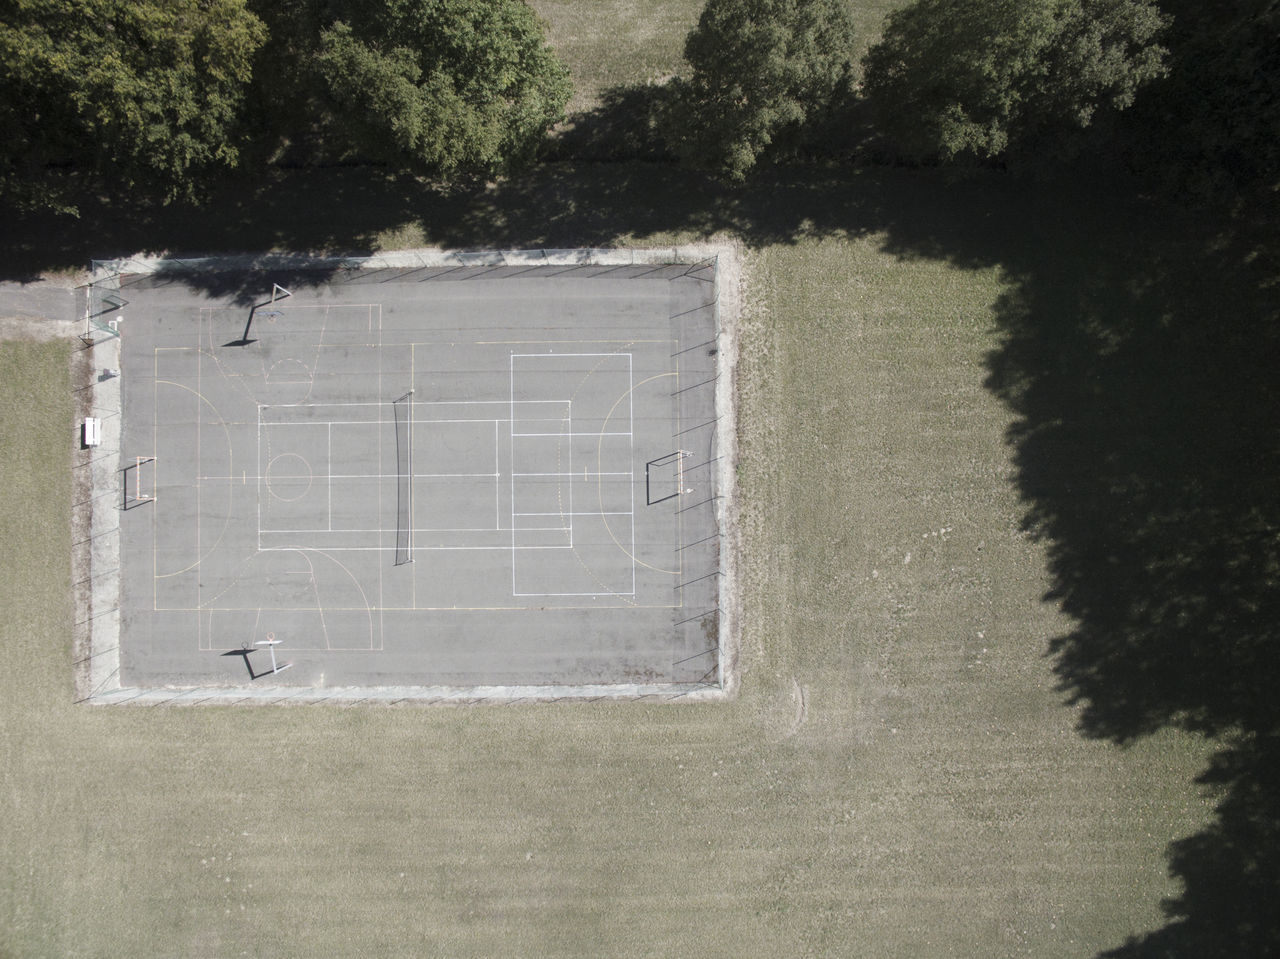 Aerial Aerial Shot Aerial View Architecture Architecture_collection Close-up Day Flying High Green Lines Minimal Minimalism Minimalobsession No People Outdoors Playground Playground Equipment Tennis Tenniscourt Tree